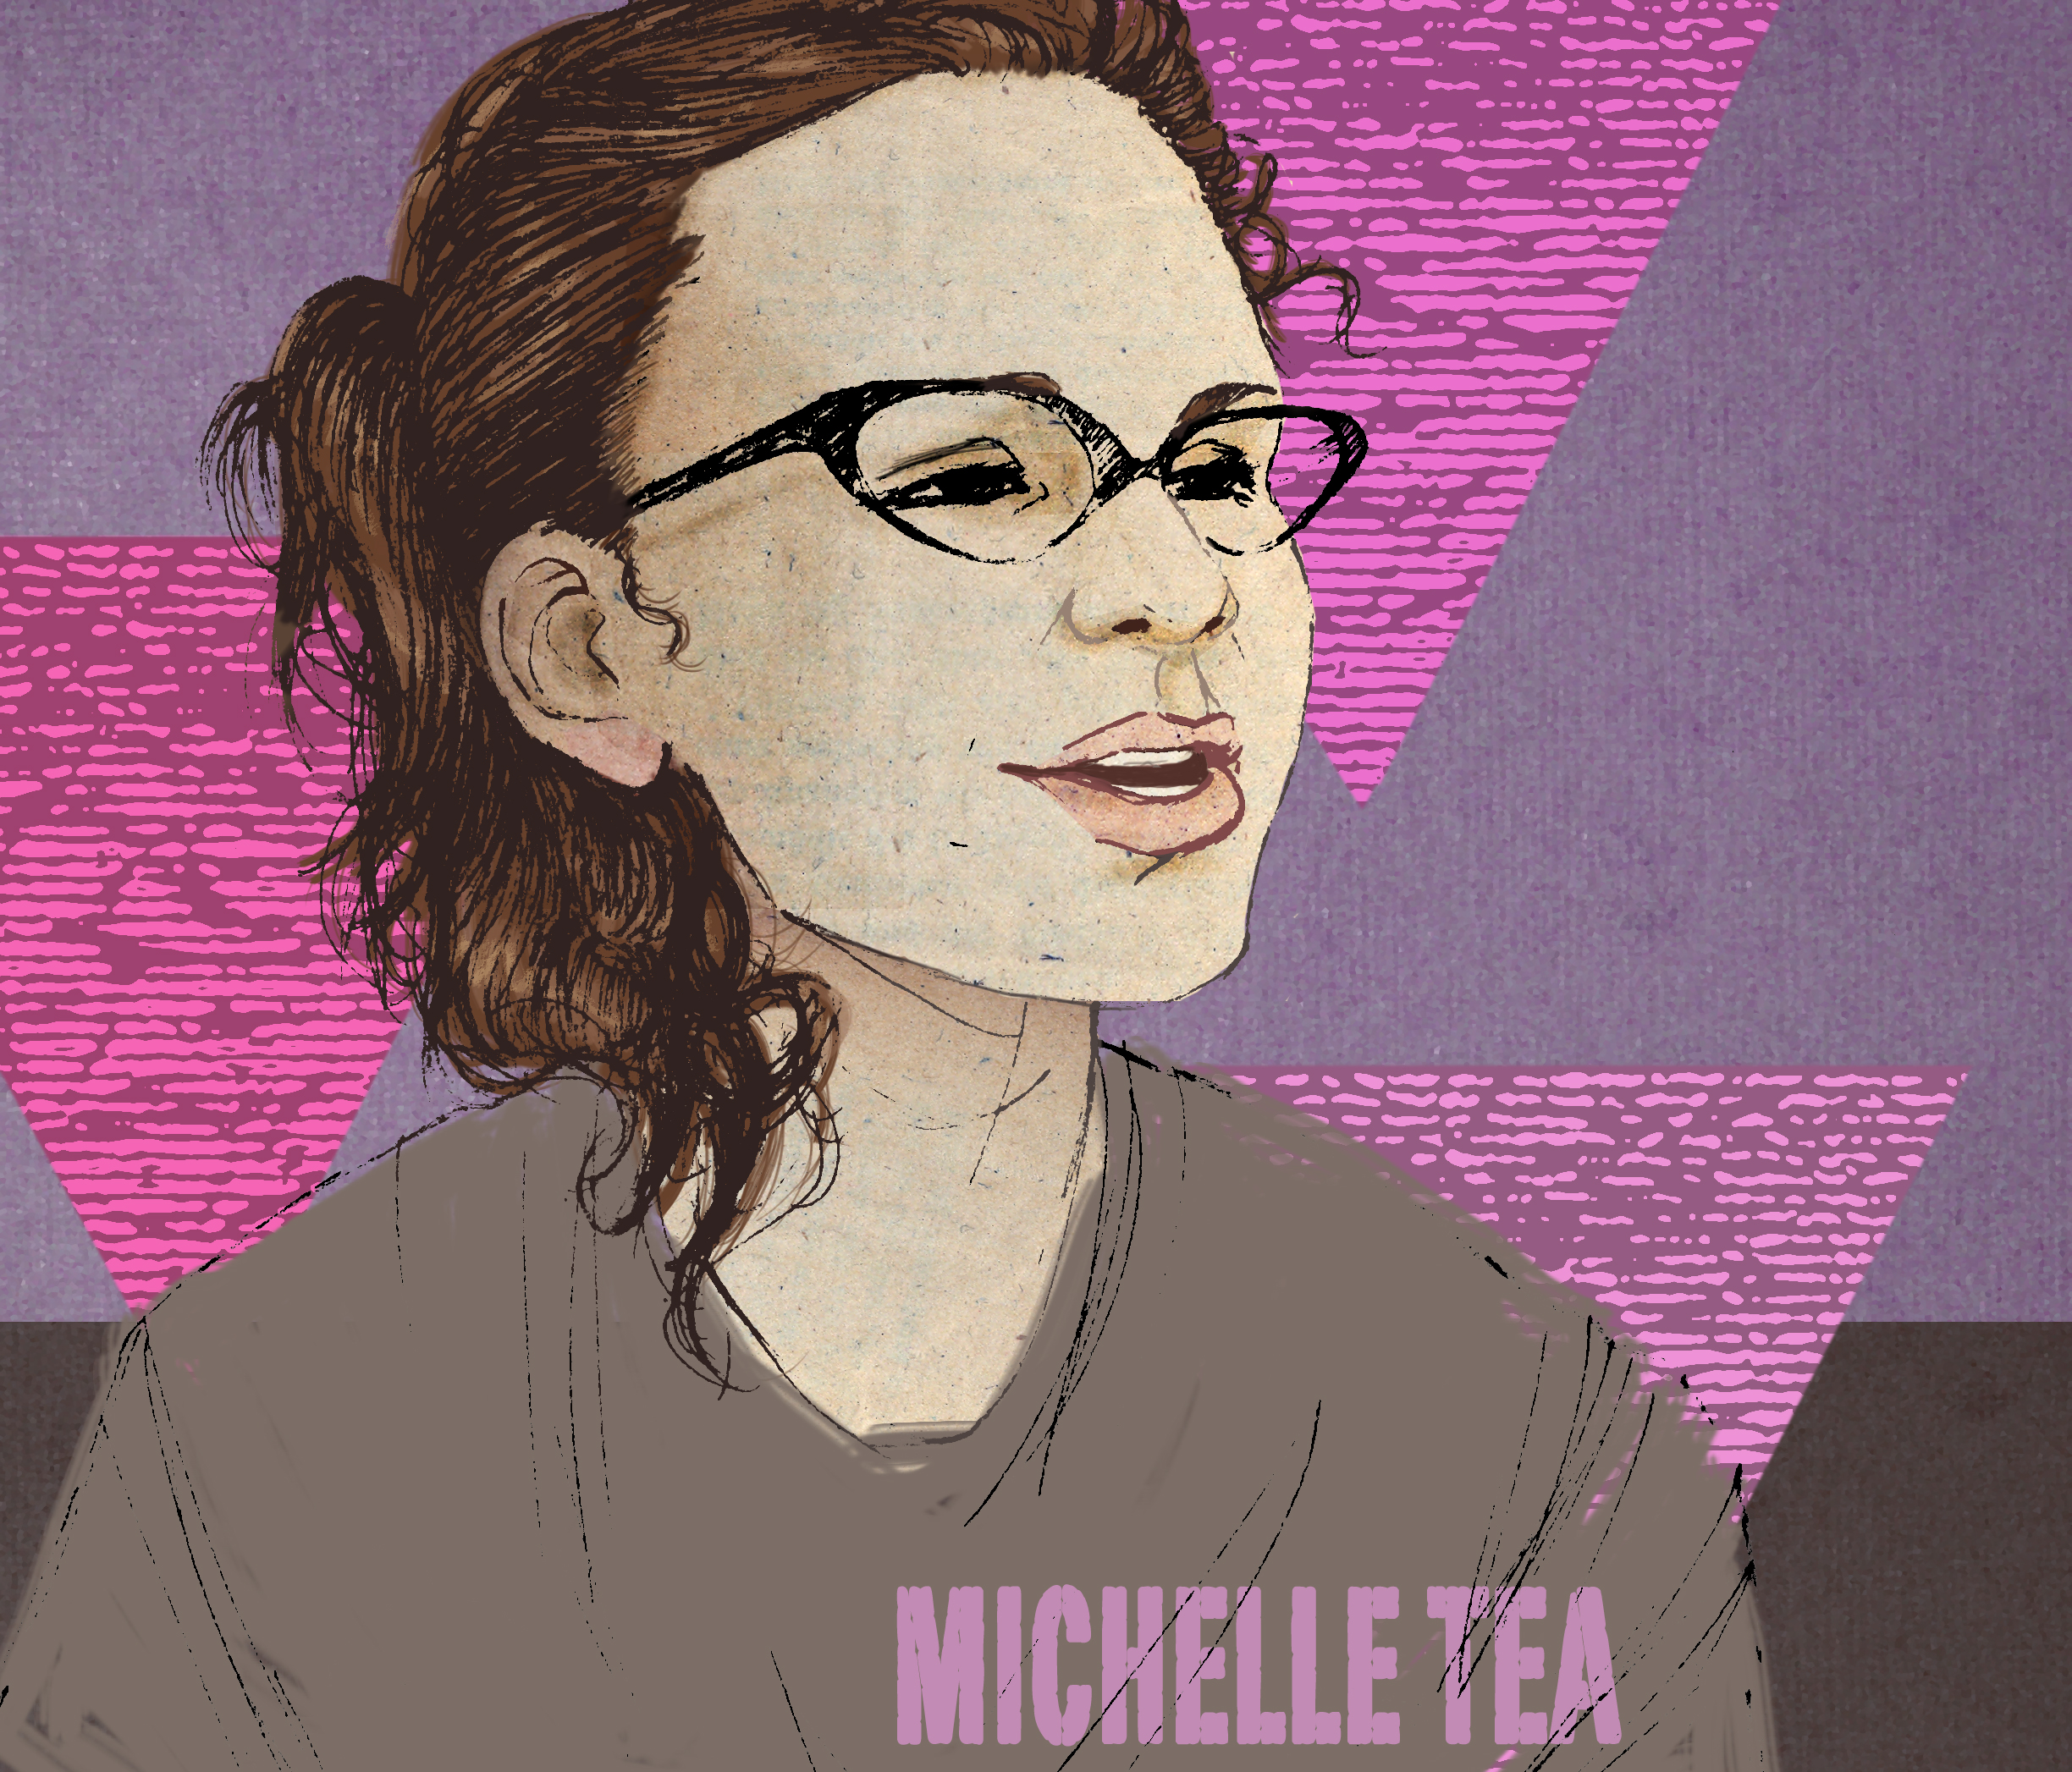 MichelleTea